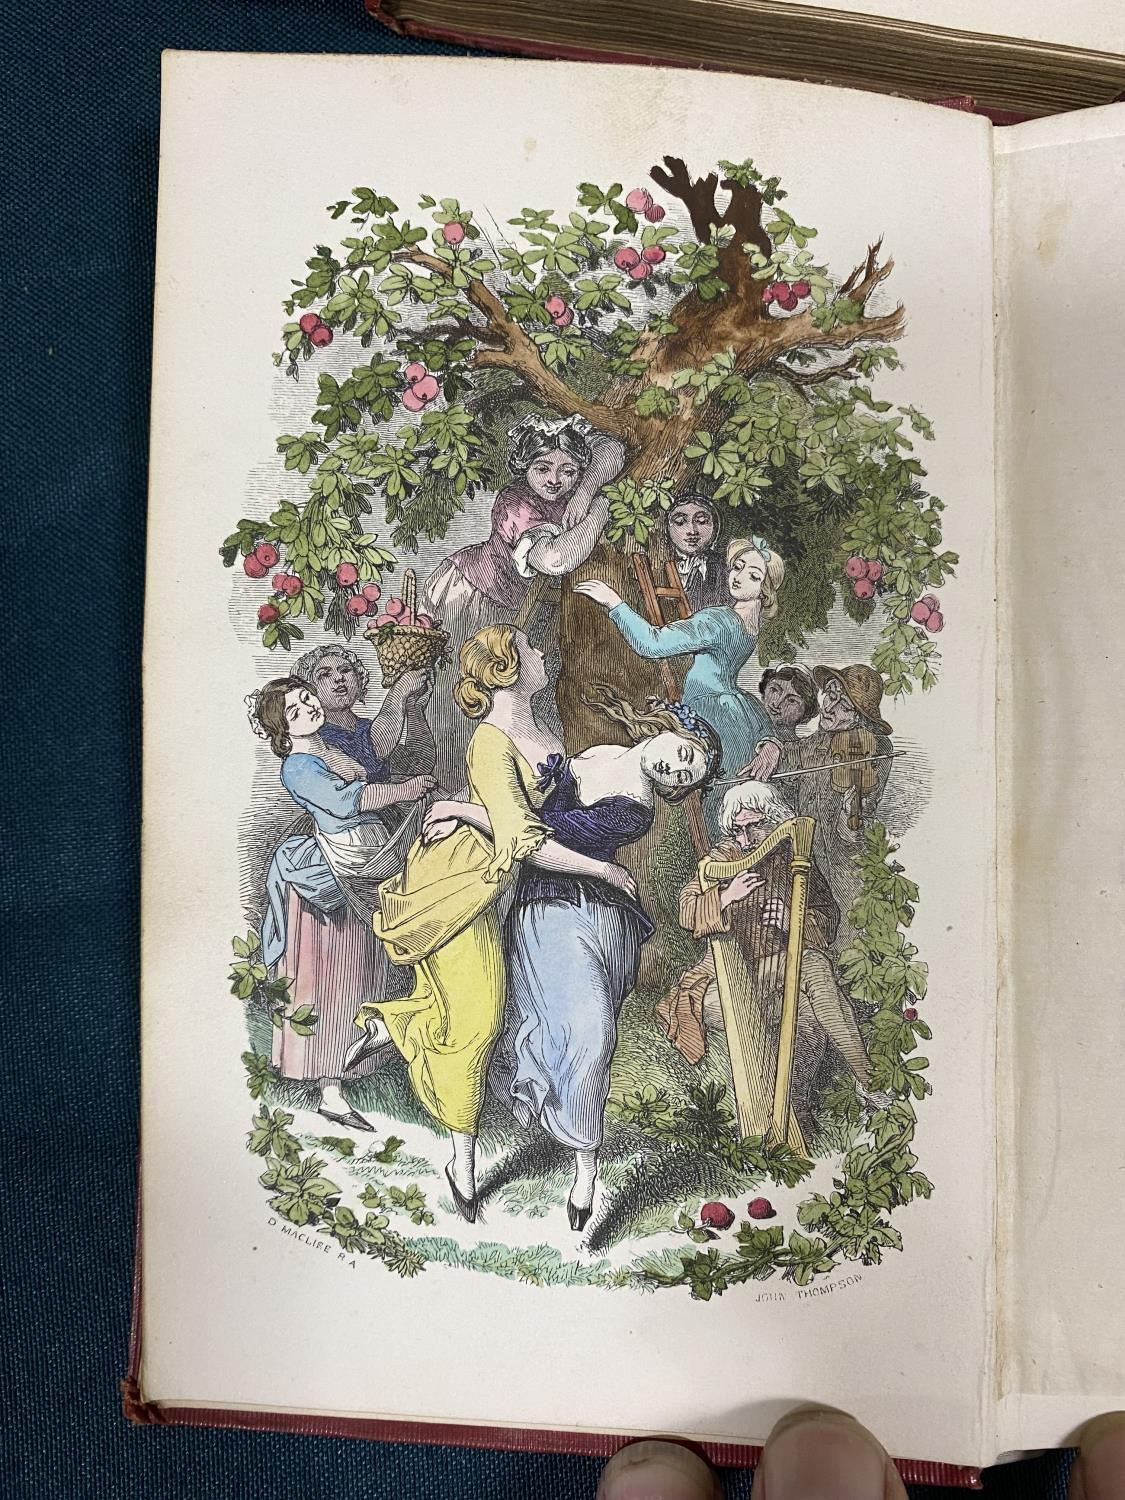 Dickens, Charles. [Christmas Books] The Chimes: A Goblin Story, first edition, first issue, 1845; - Image 4 of 4